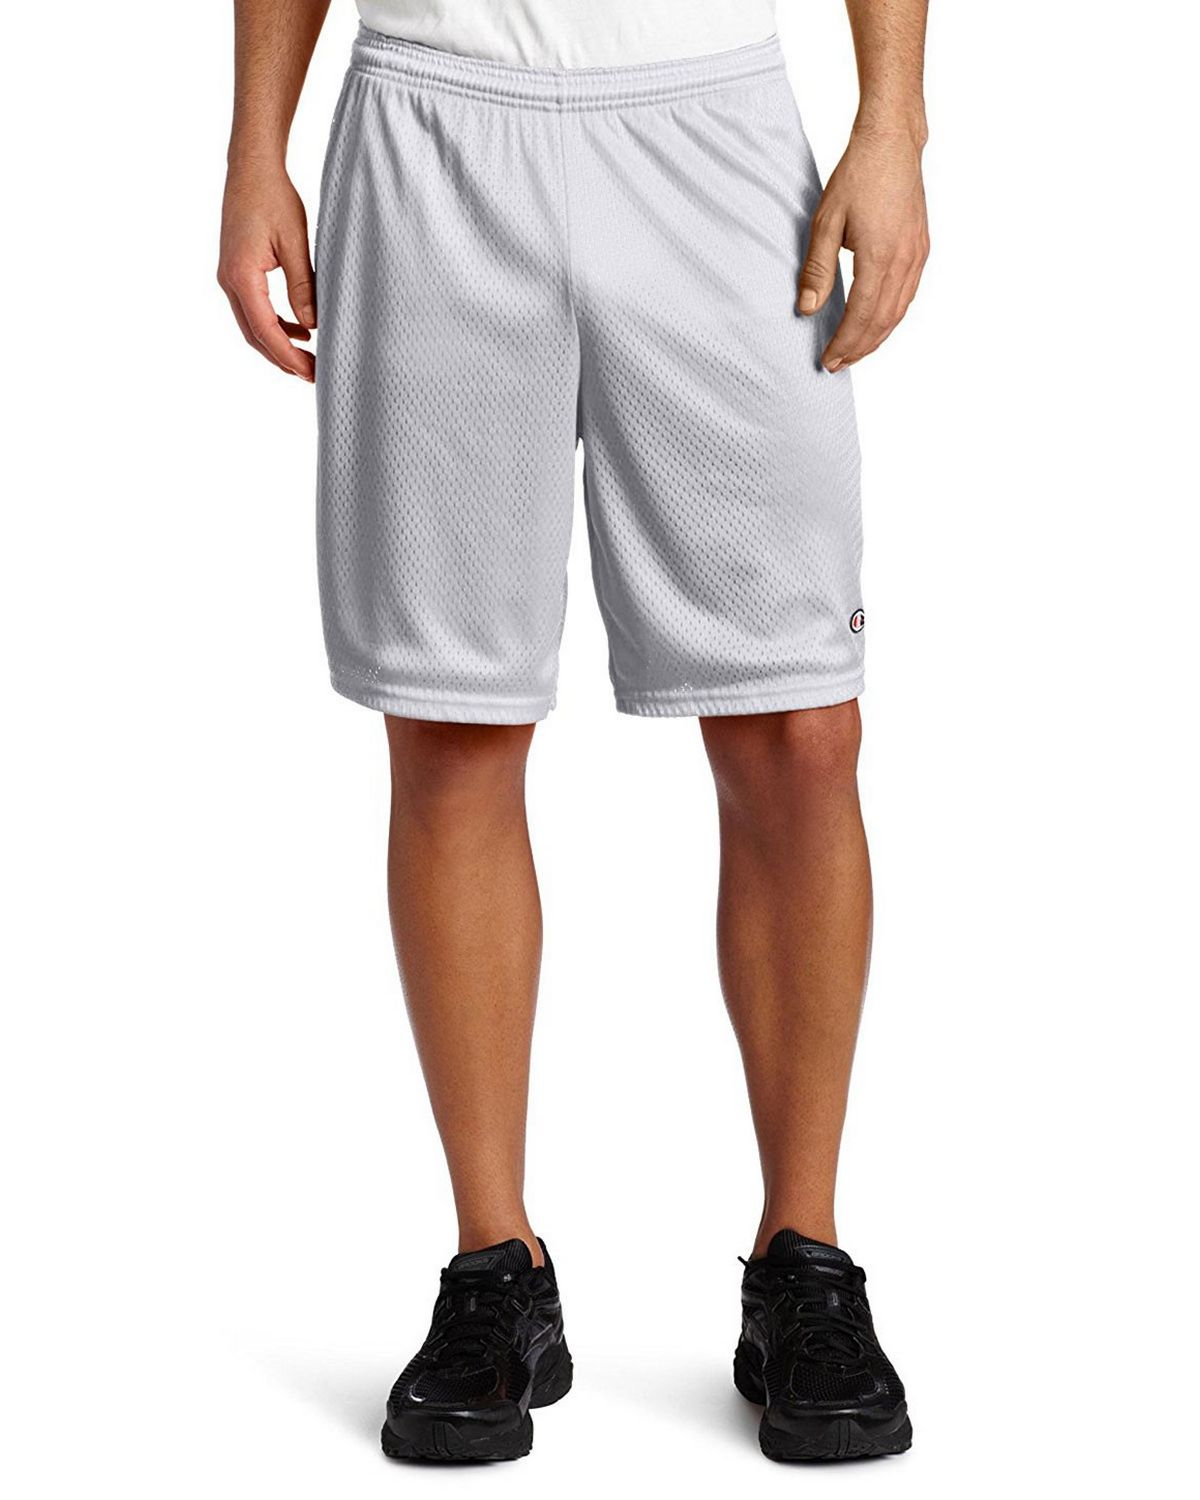 Champion S162 Adult Mesh Short - Black - 2X S162